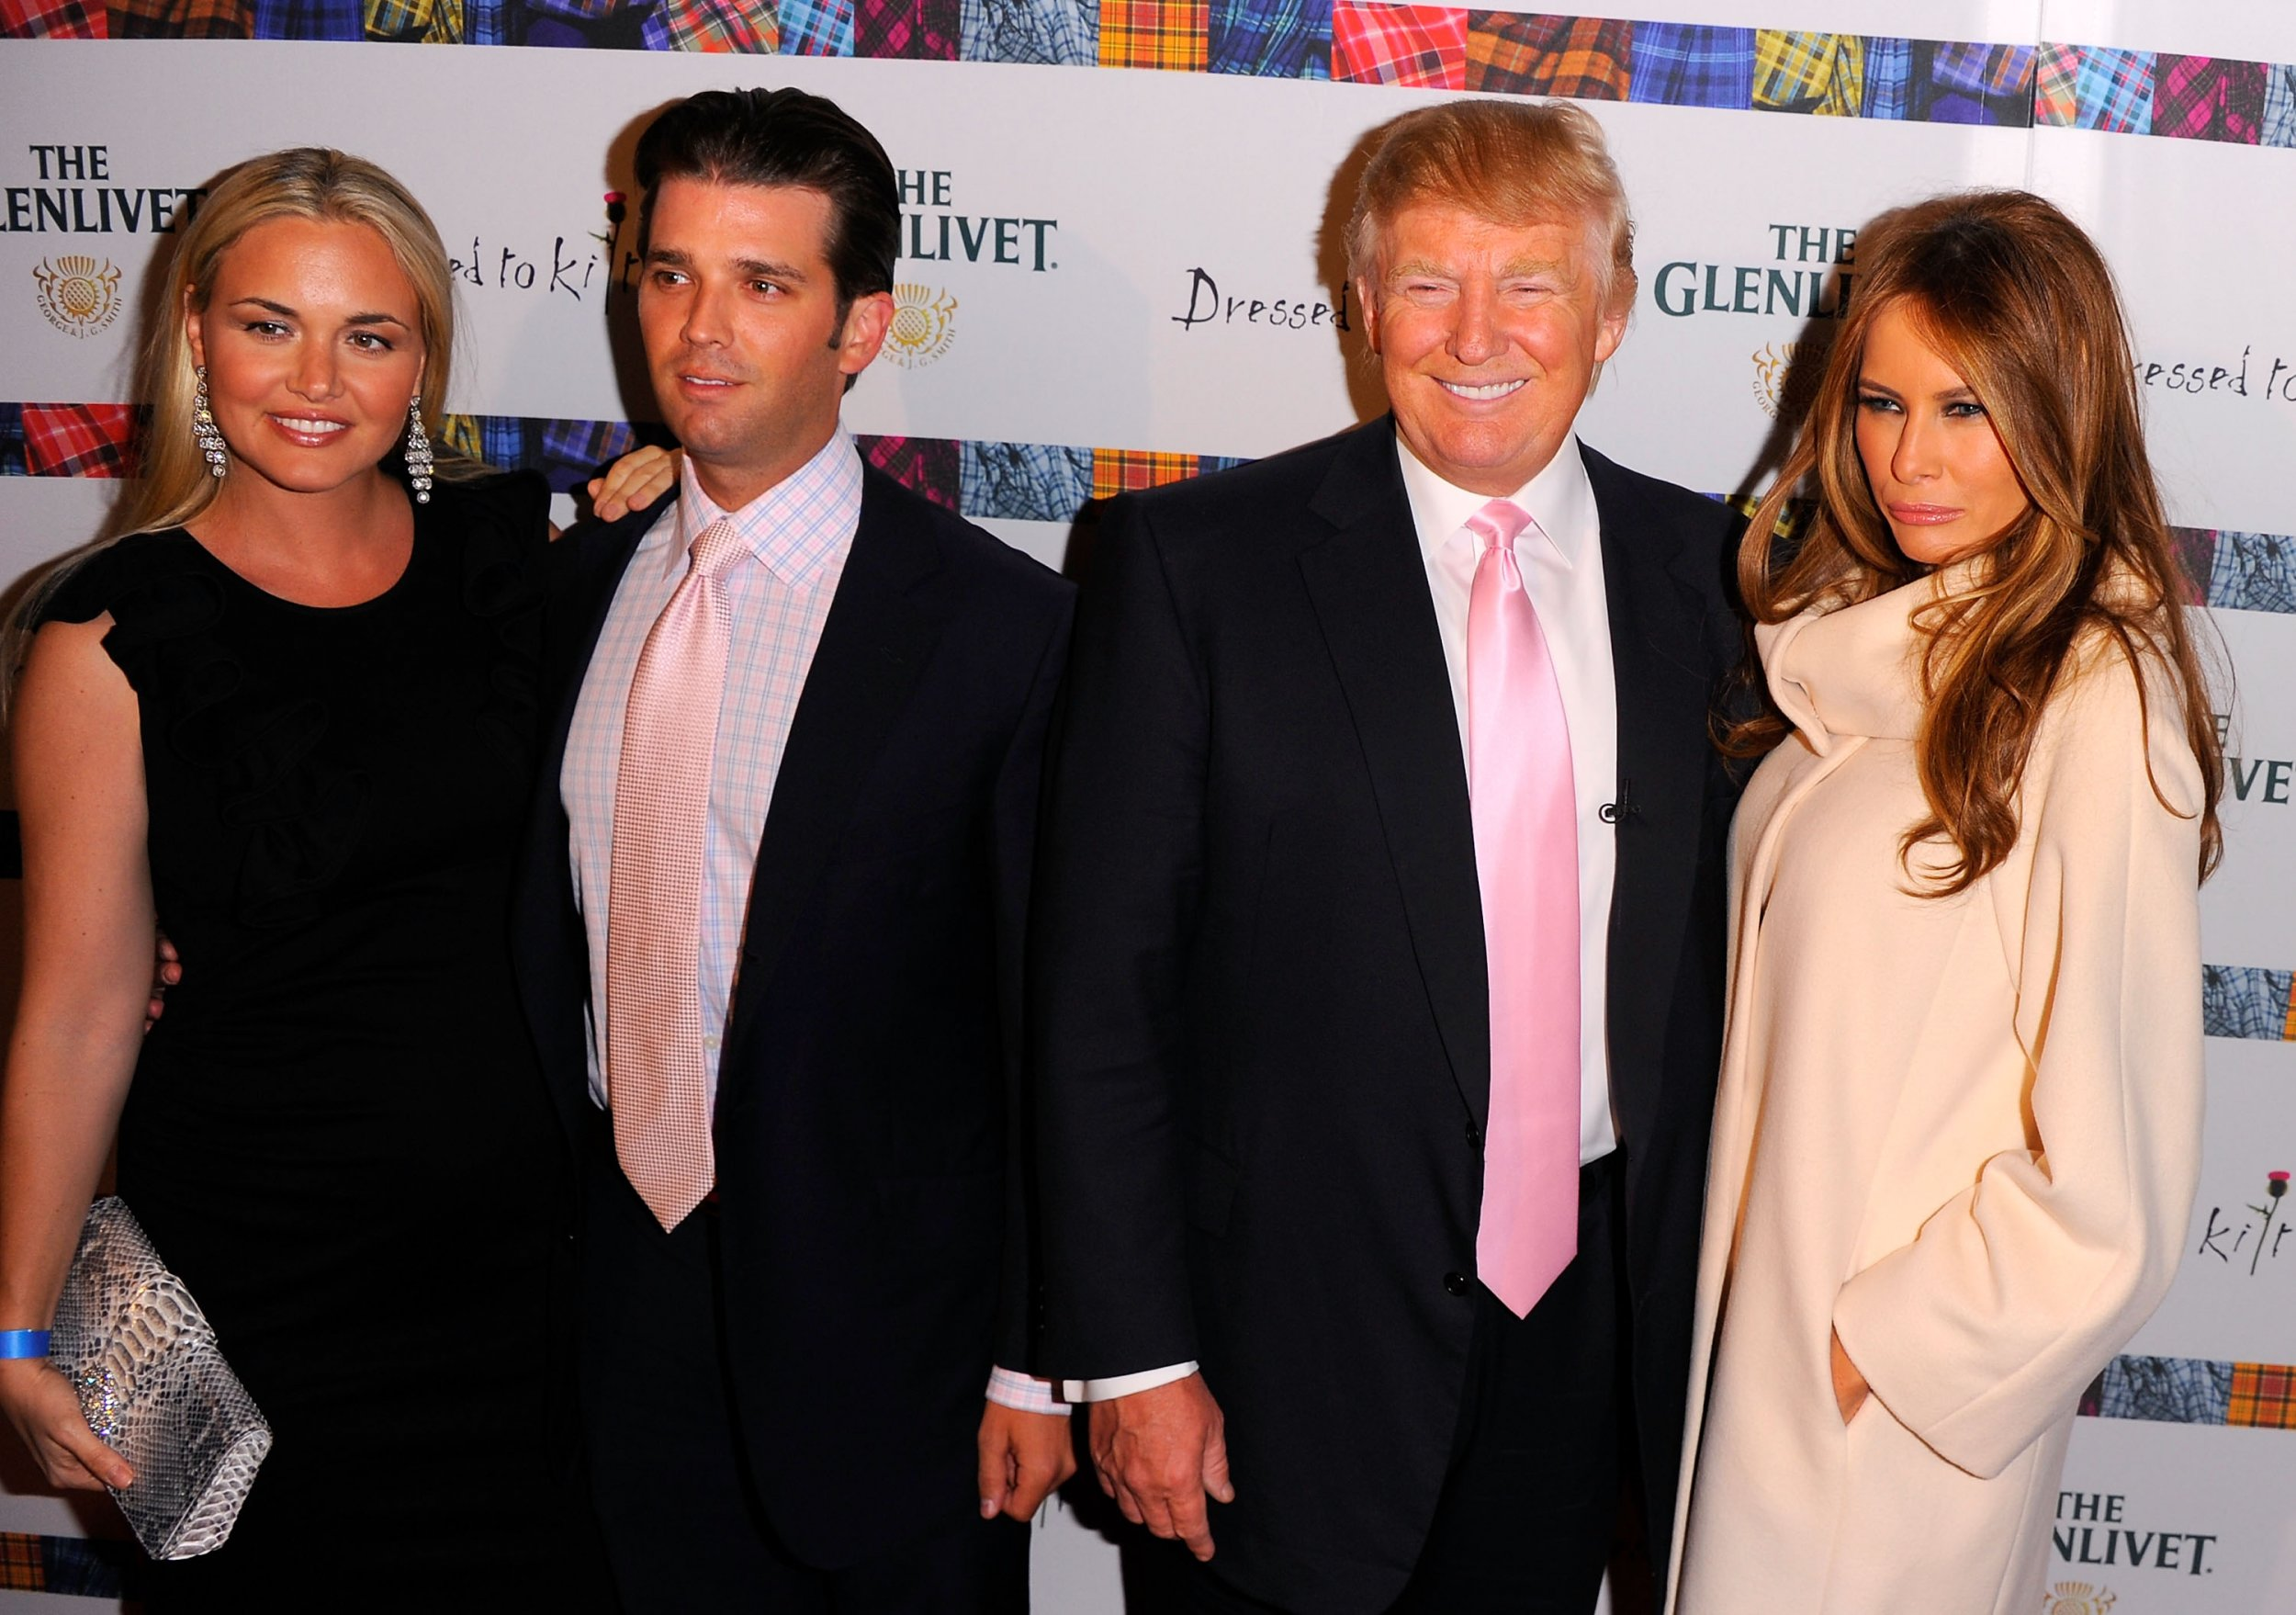 Americans wonder if Melania Trump will divorce the president after Vanessa Trump files to end marriage with Trump Jr.